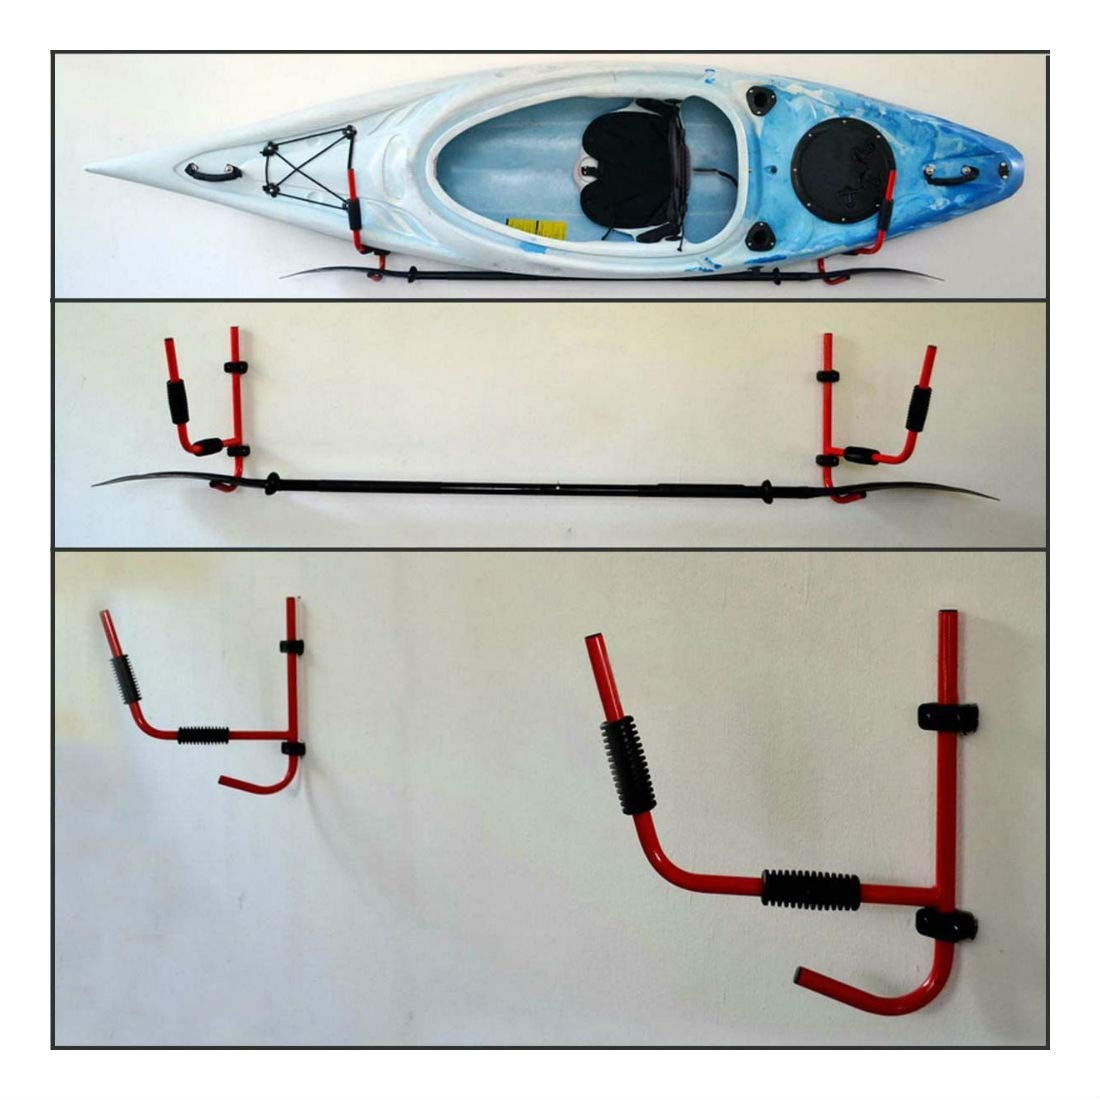 Kayak Wall Hanger >> Cheap Kayak Wall Mount Find Kayak Wall Mount Deals On Line